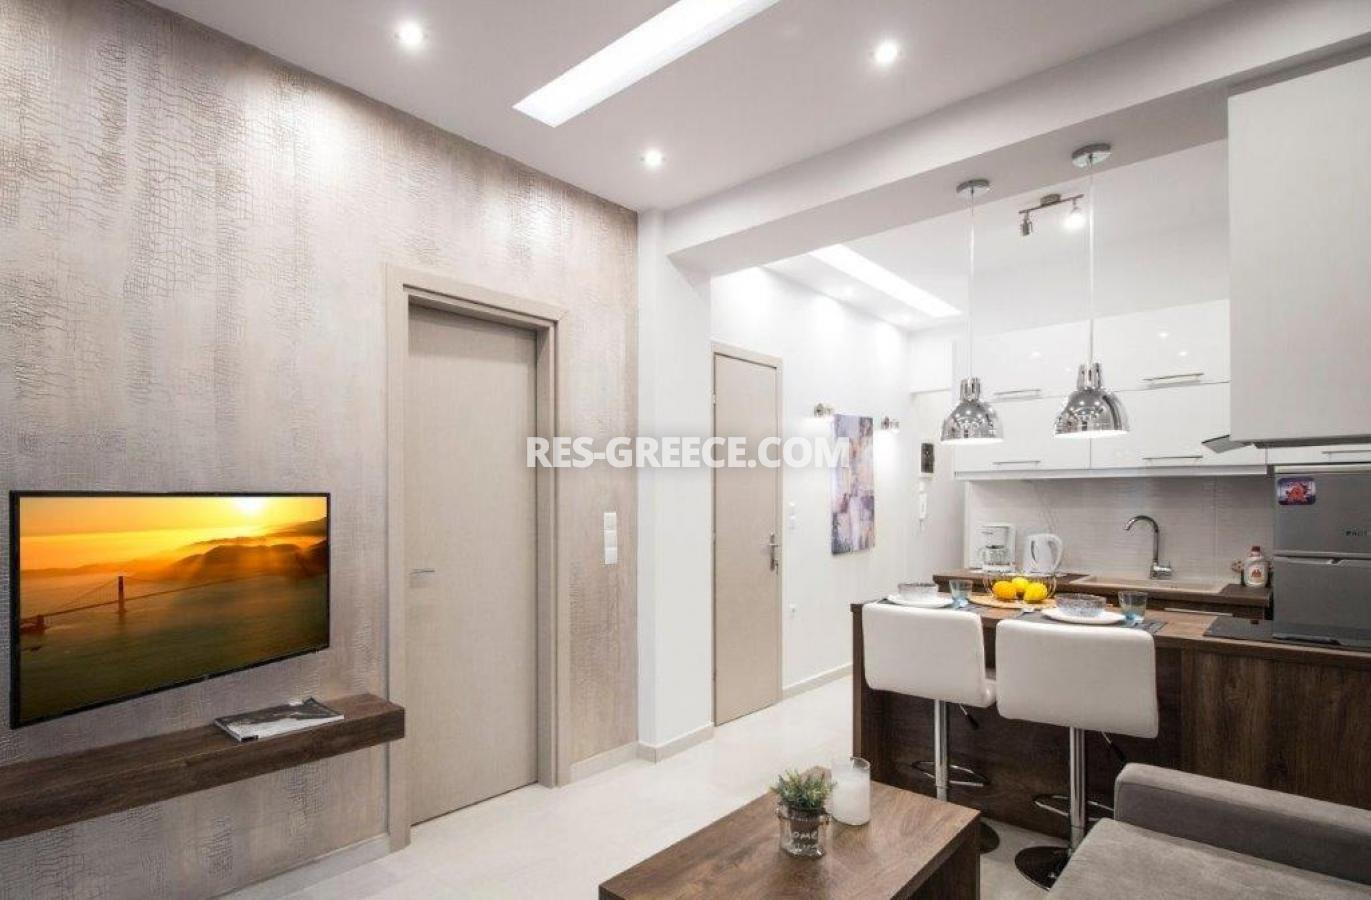 Germanou, Central Macedonia, Greece - apartments in Thessaloniki center for residence or long-term rent - Photo 1